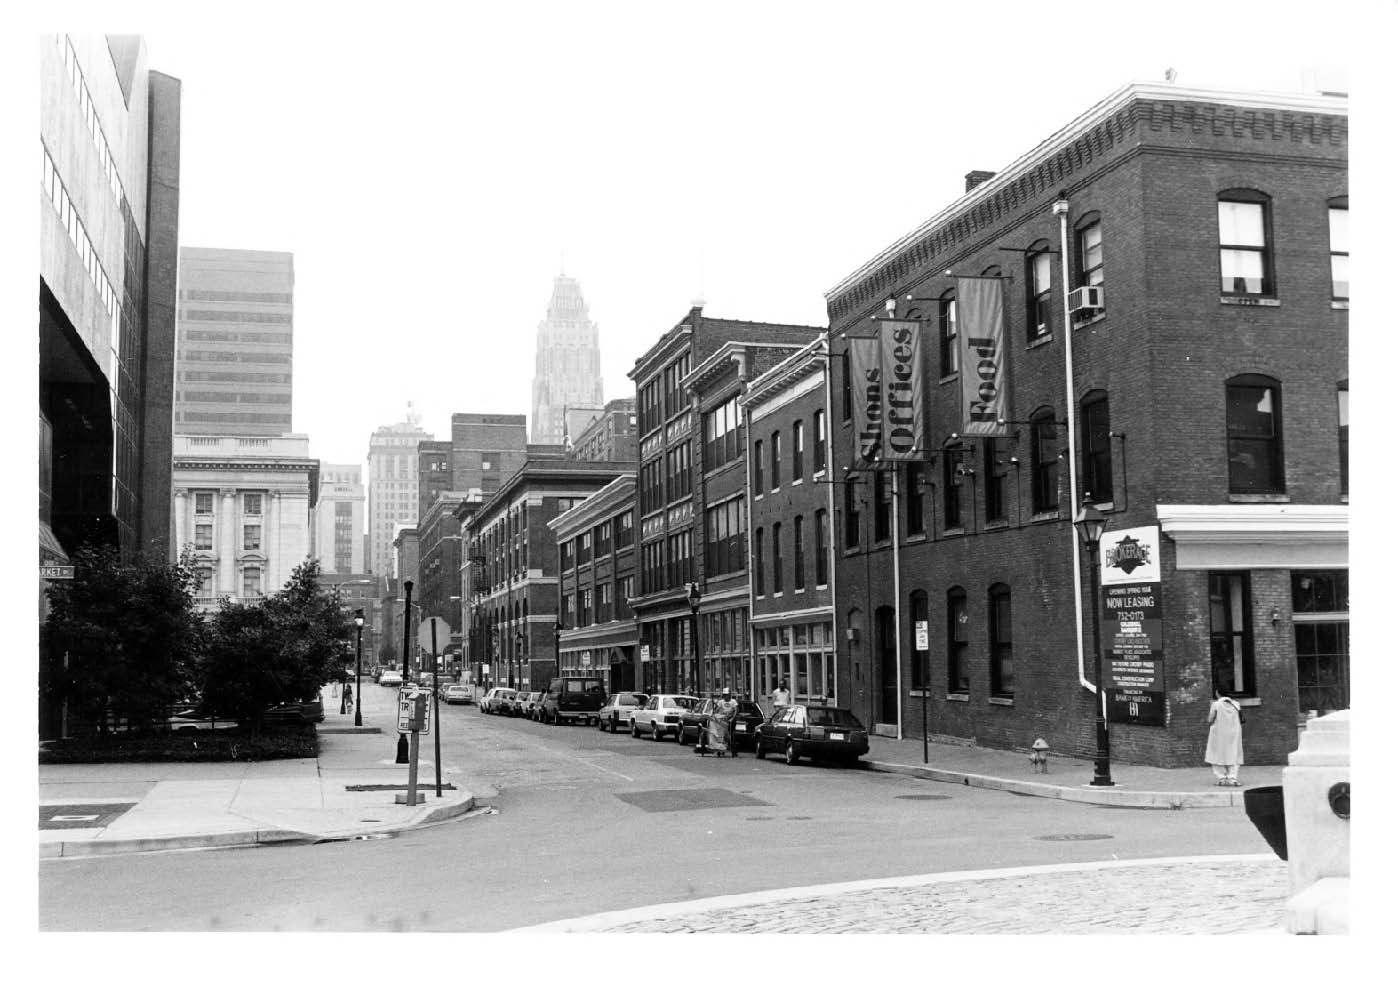 Baltimore's Business and Government Historic District